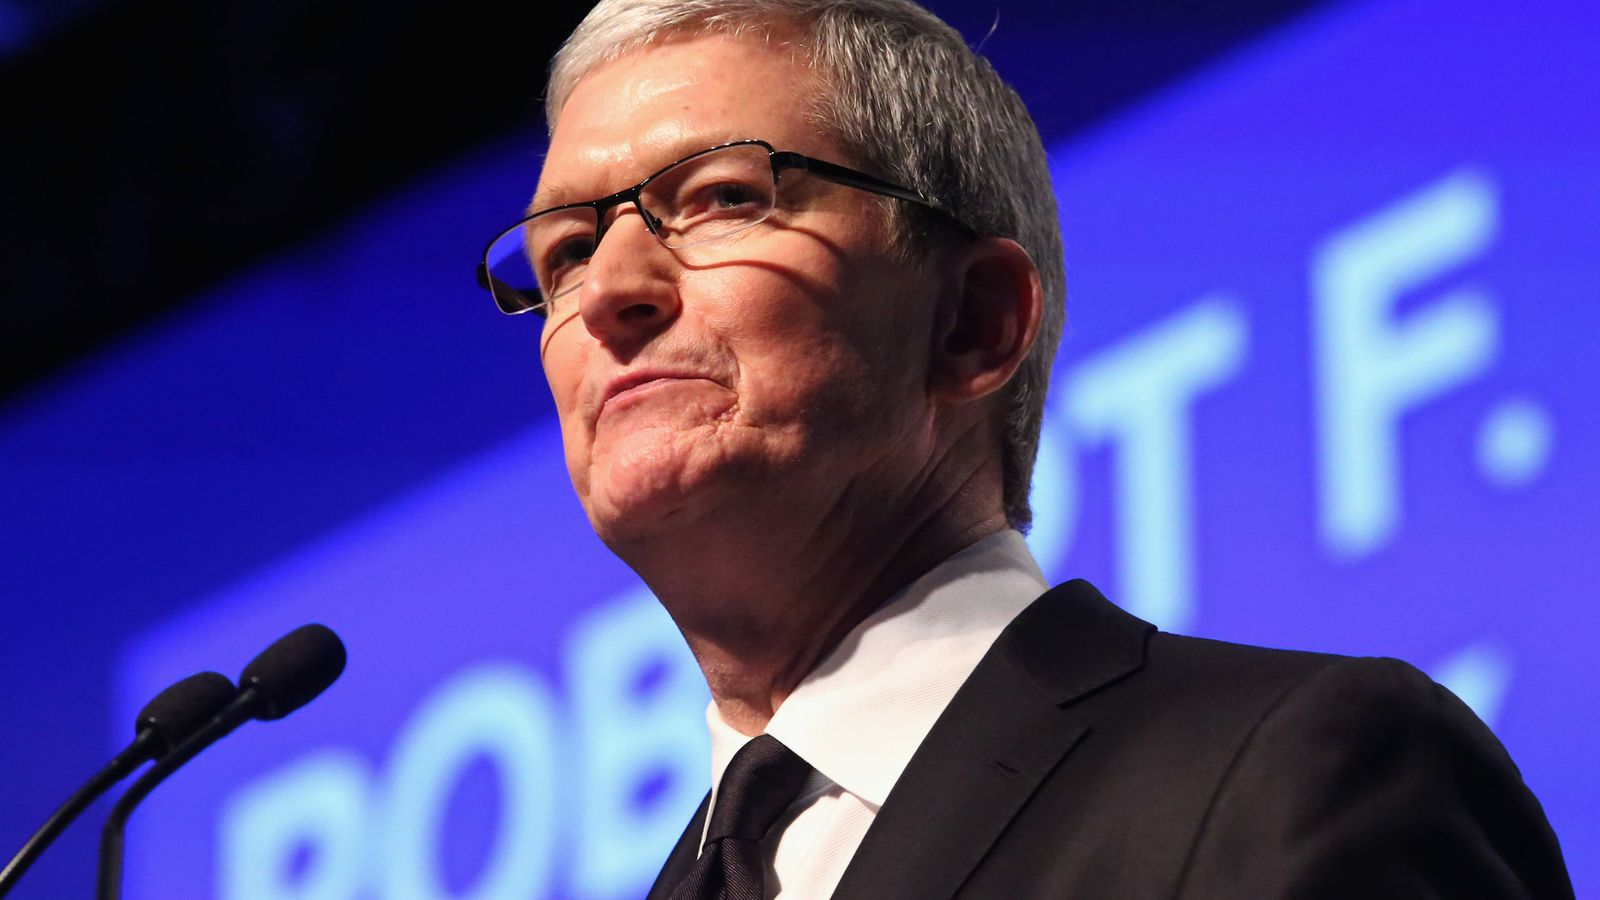 Apple cut Tim Cook's total pay 15 percent last year as it missed its sales and earnings goals